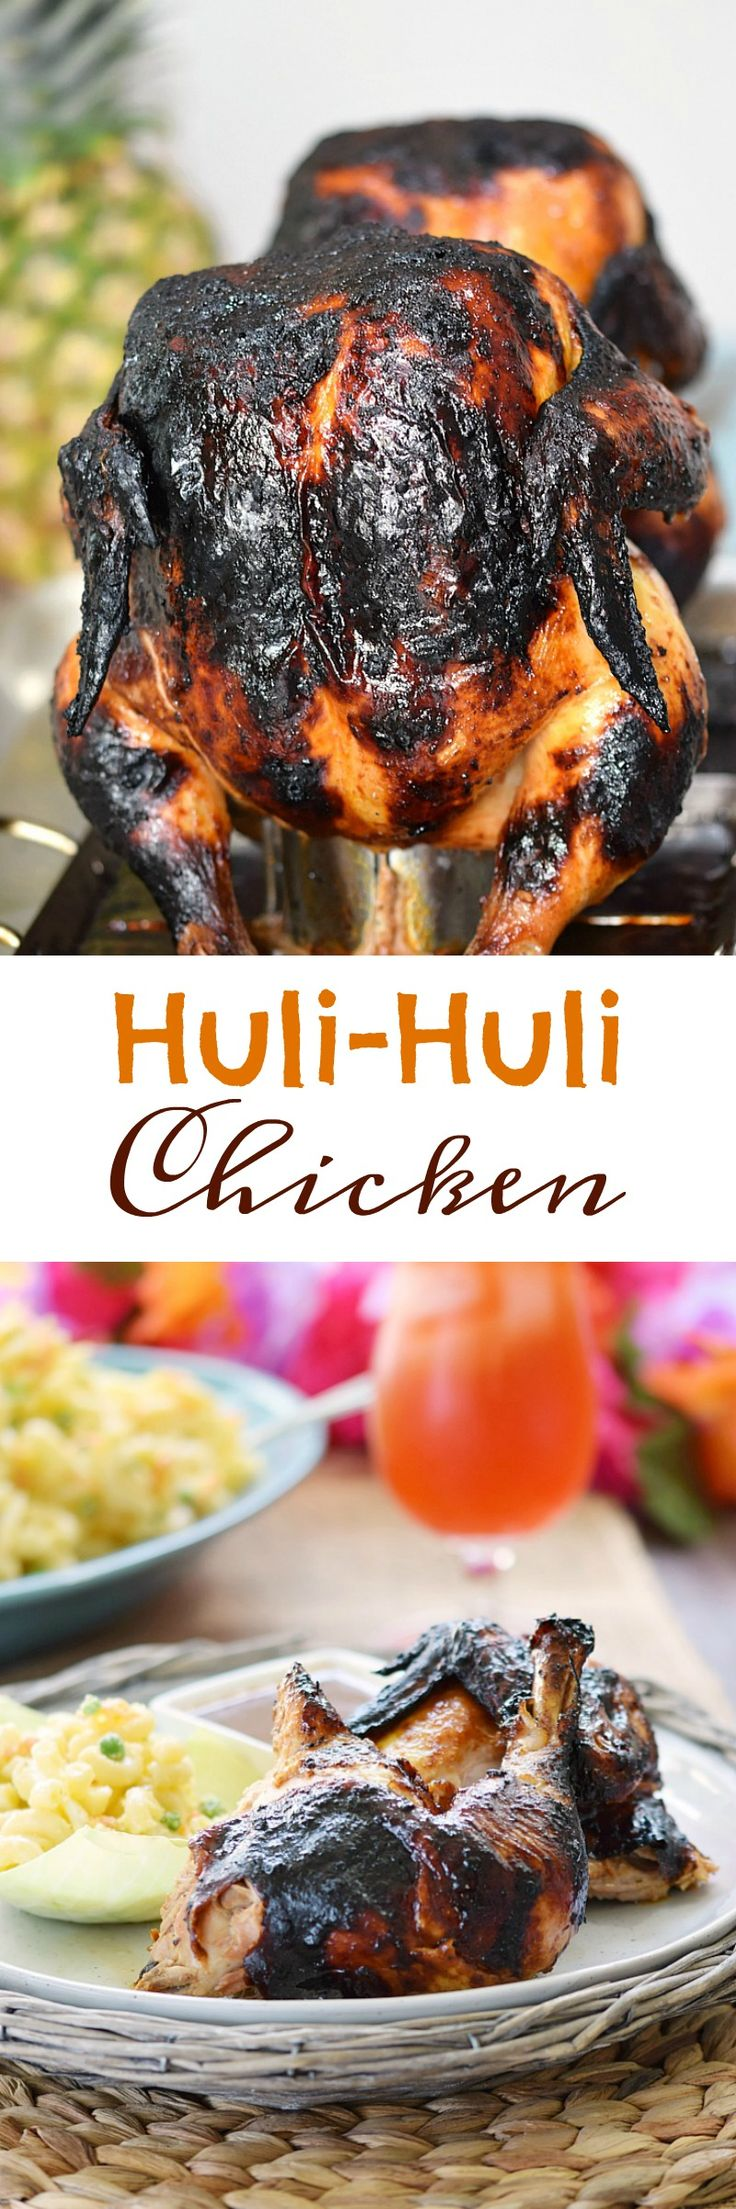 This sweet and sticky Huli Huli Chicken will have them coming back for more...and then back again. It's not an exact copy-cat, but that won't matter! cookingwithcurls.com